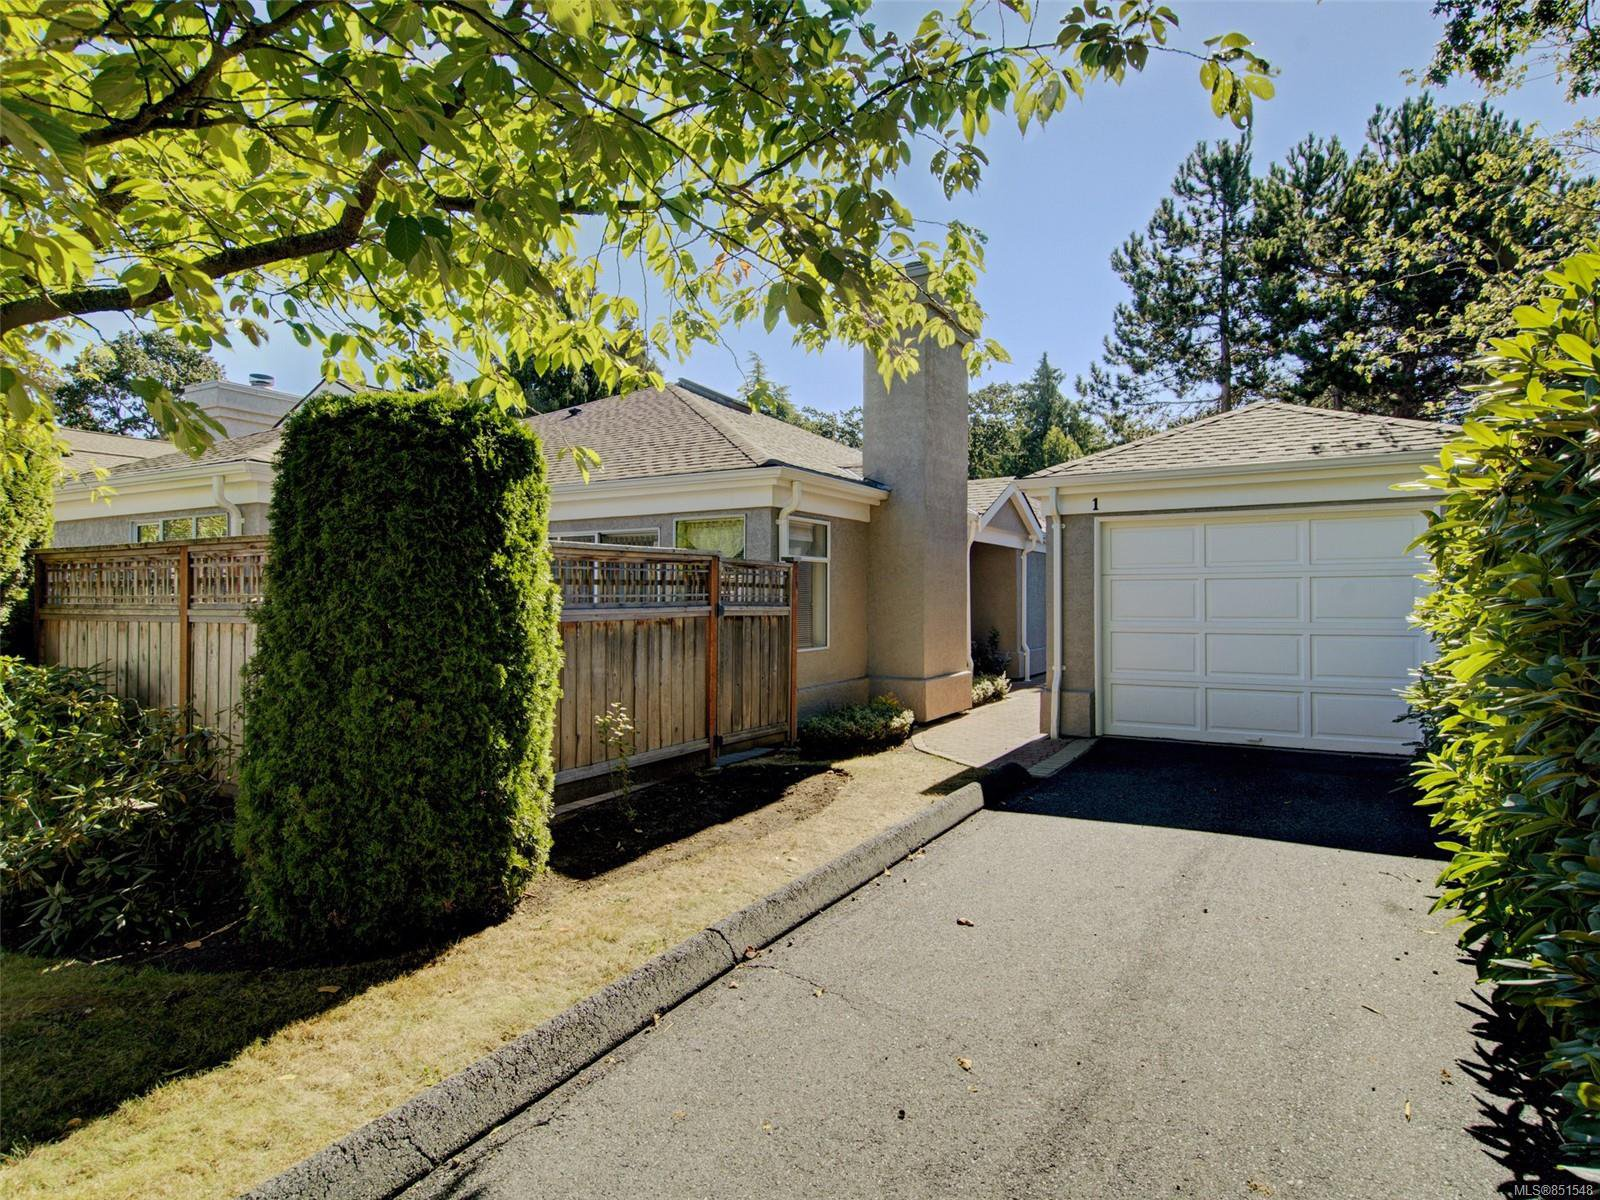 Main Photo: 1 3969 Cedar Hill Cross Rd in : SE Maplewood Row/Townhouse for sale (Saanich East)  : MLS®# 851548